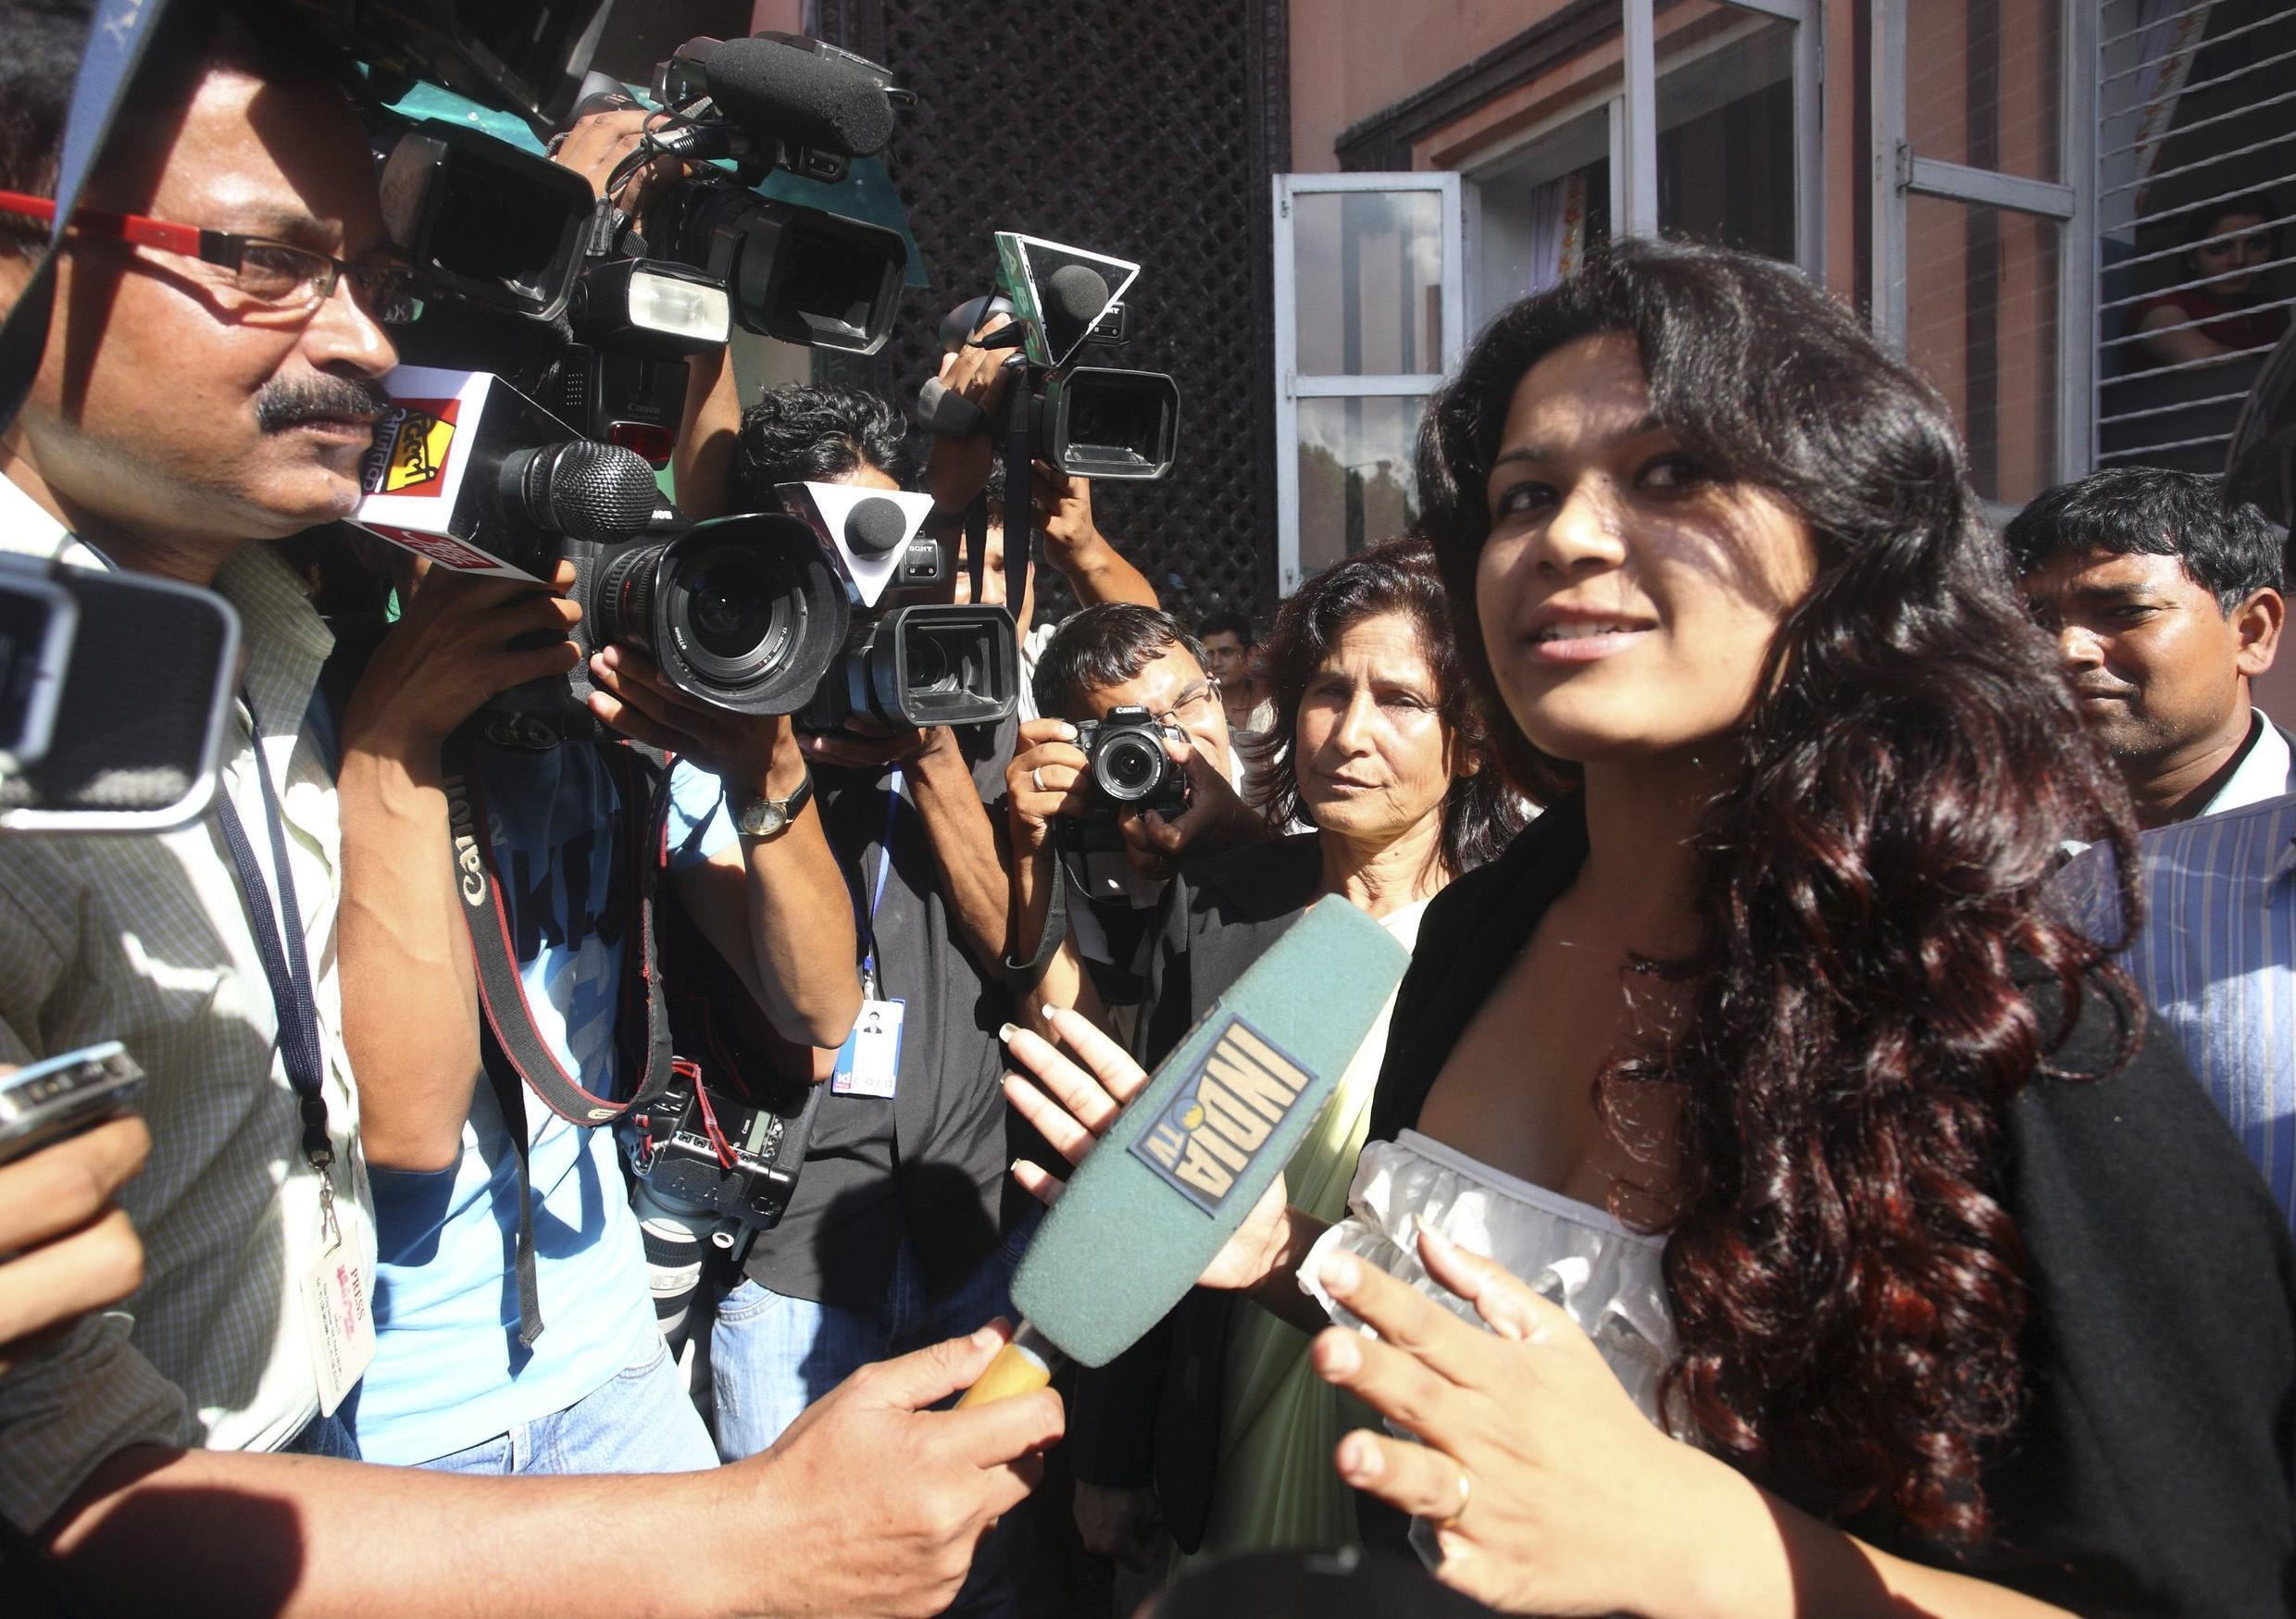 Biswas, fiancee of 65 year-old serial killer Sobhraj of France, speaks to the media at the Supreme Court in Kathmandu